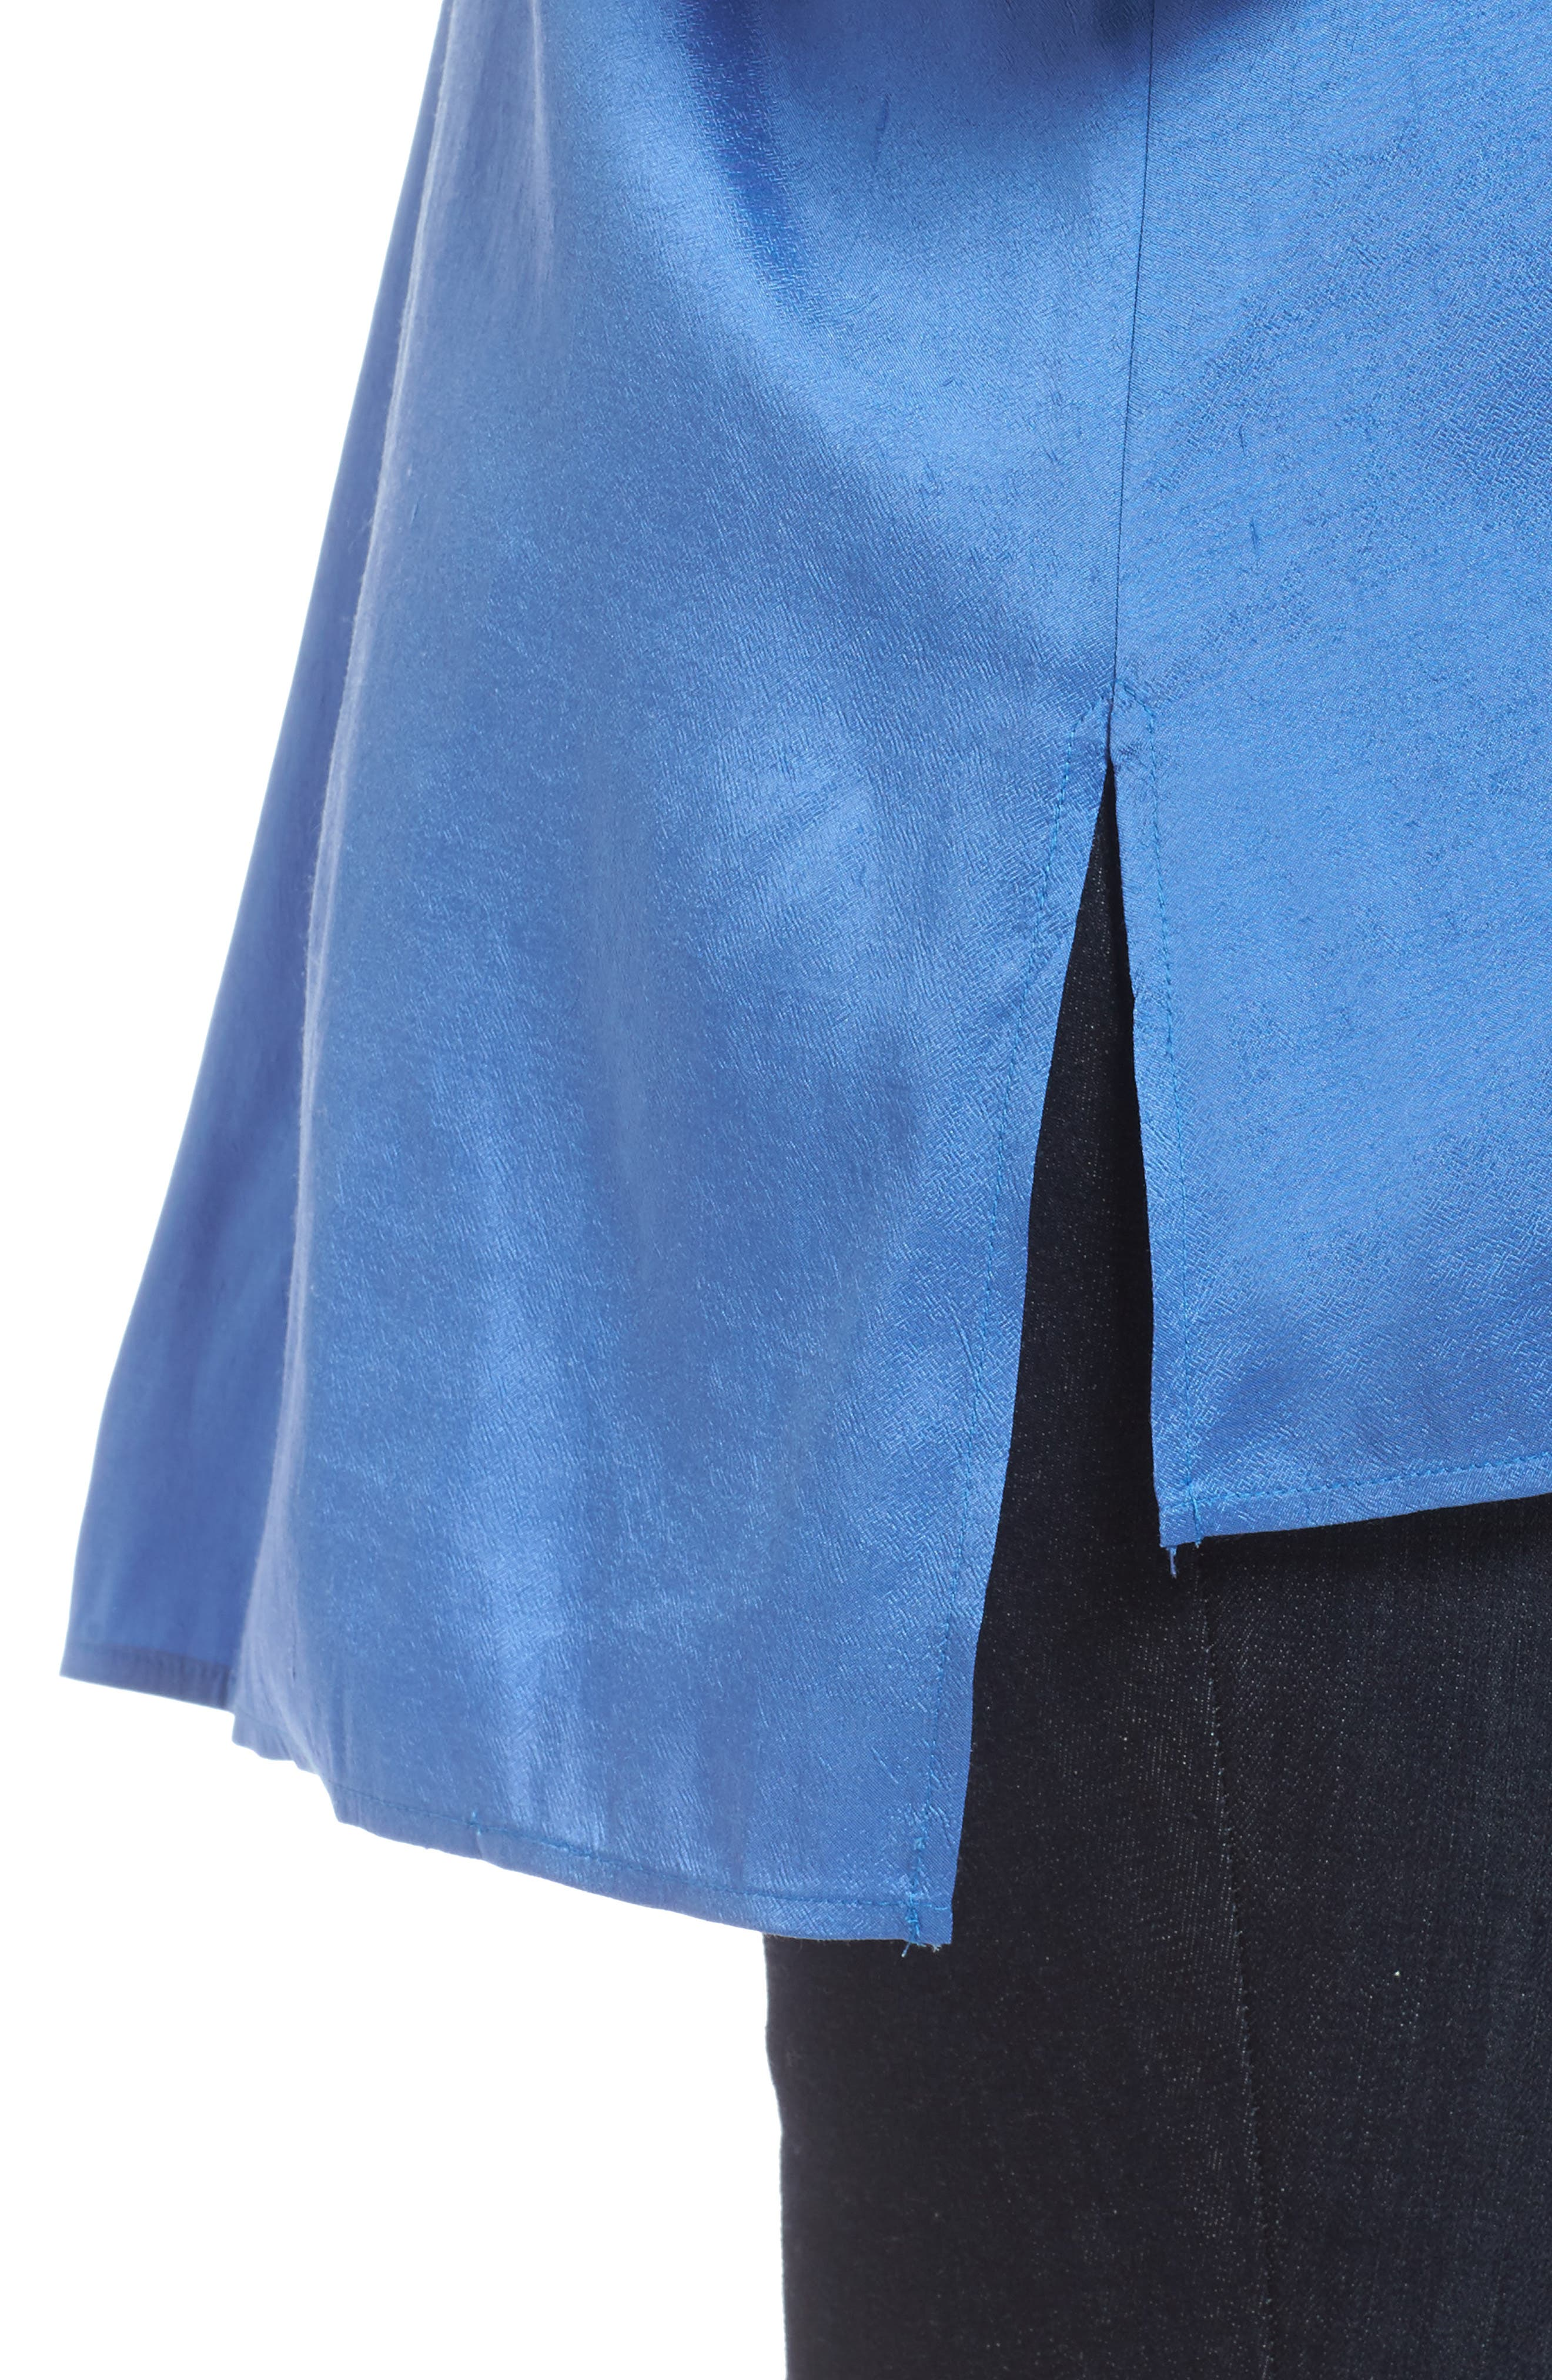 Notch Collar Shirt,                             Alternate thumbnail 4, color,                             Blue Bell